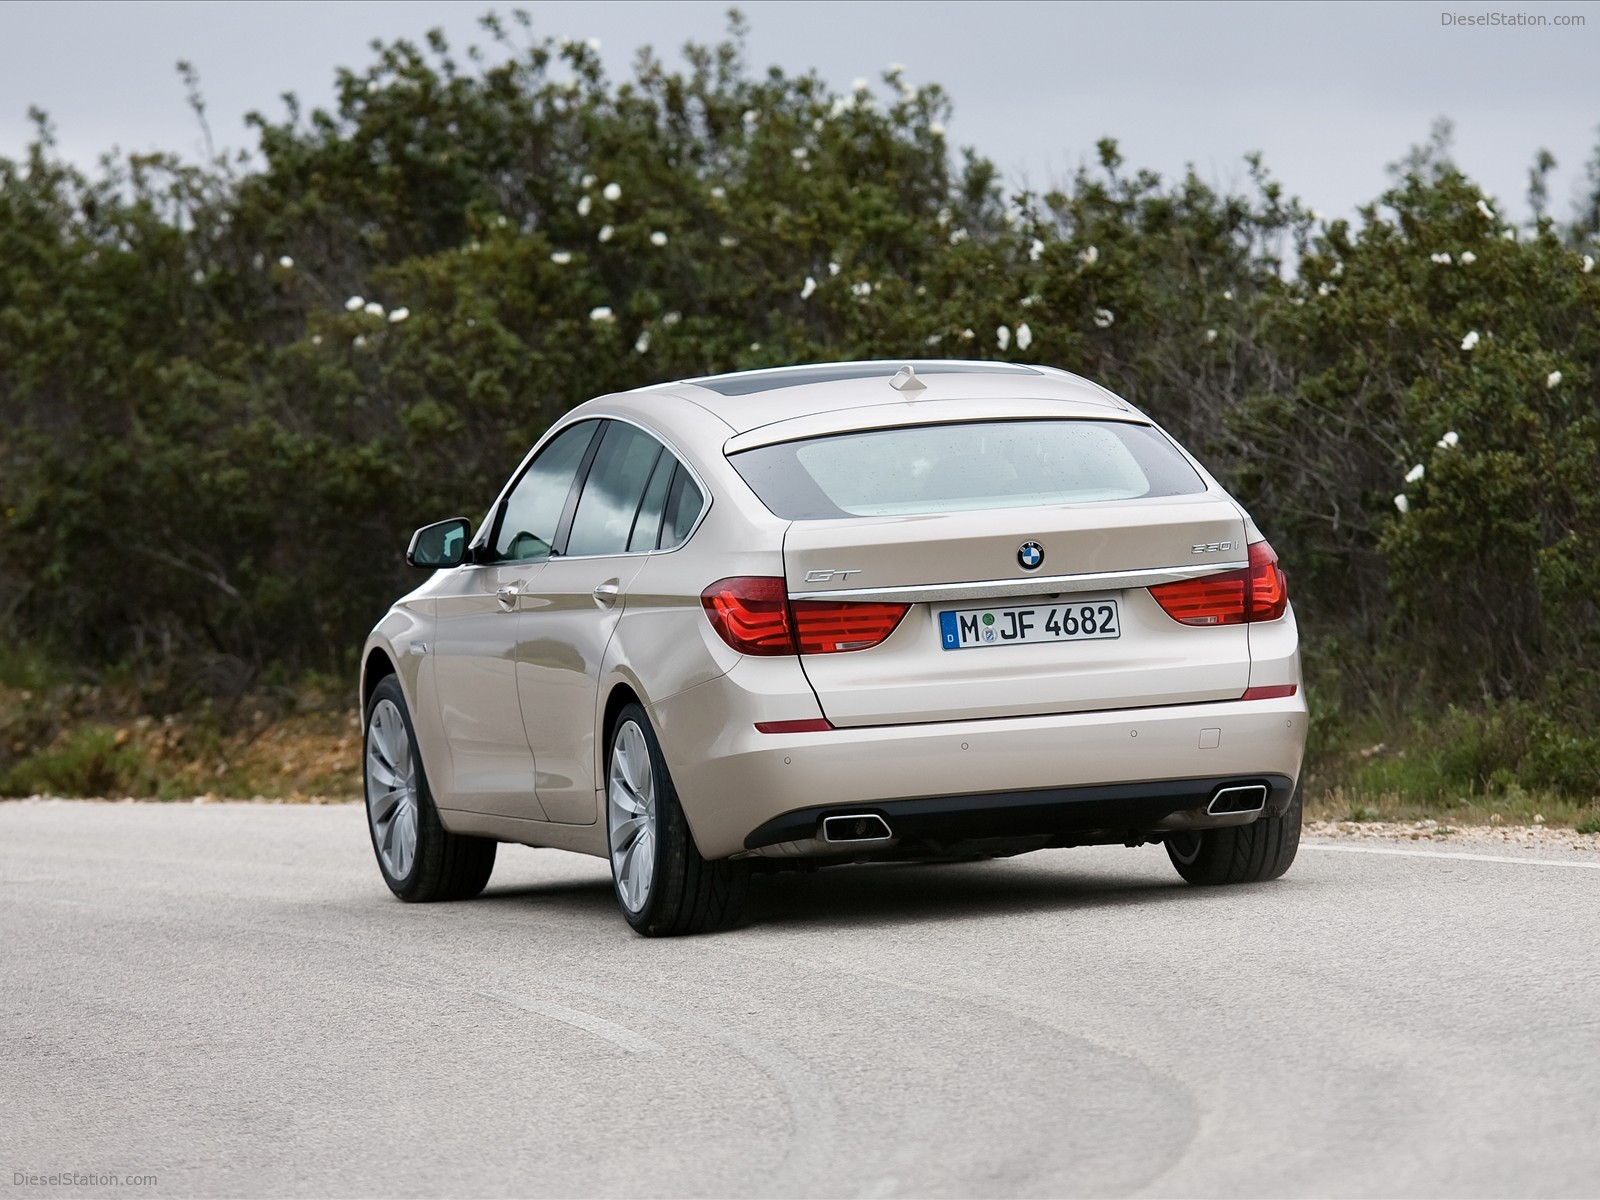 2010 BMW 5 Series Gran Turismo photo - 2